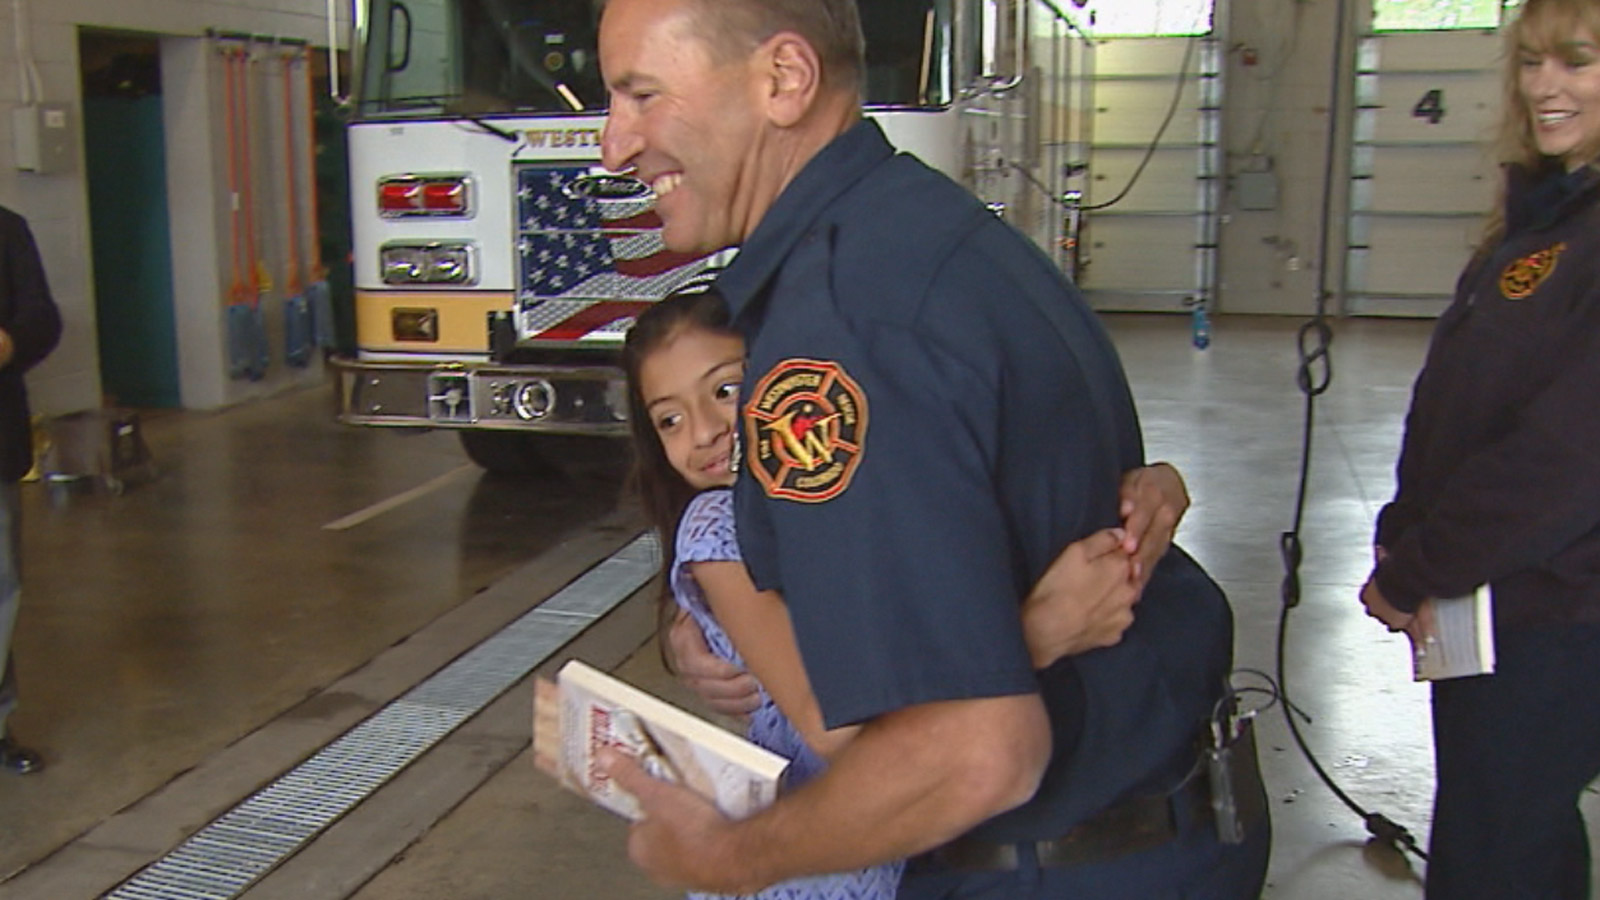 Halle Burke was reunited with the firefighters who took her in 12 years ago (credit: CBS)